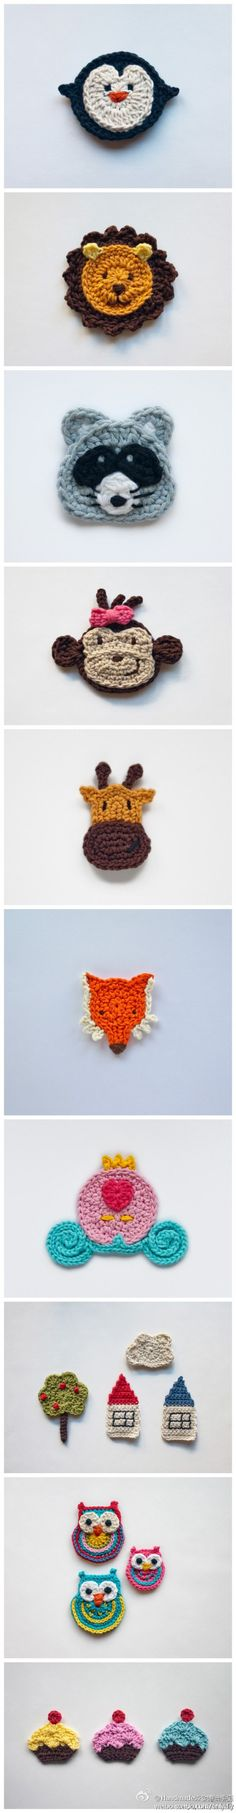 Simple, easy, cute crochet 2D critters